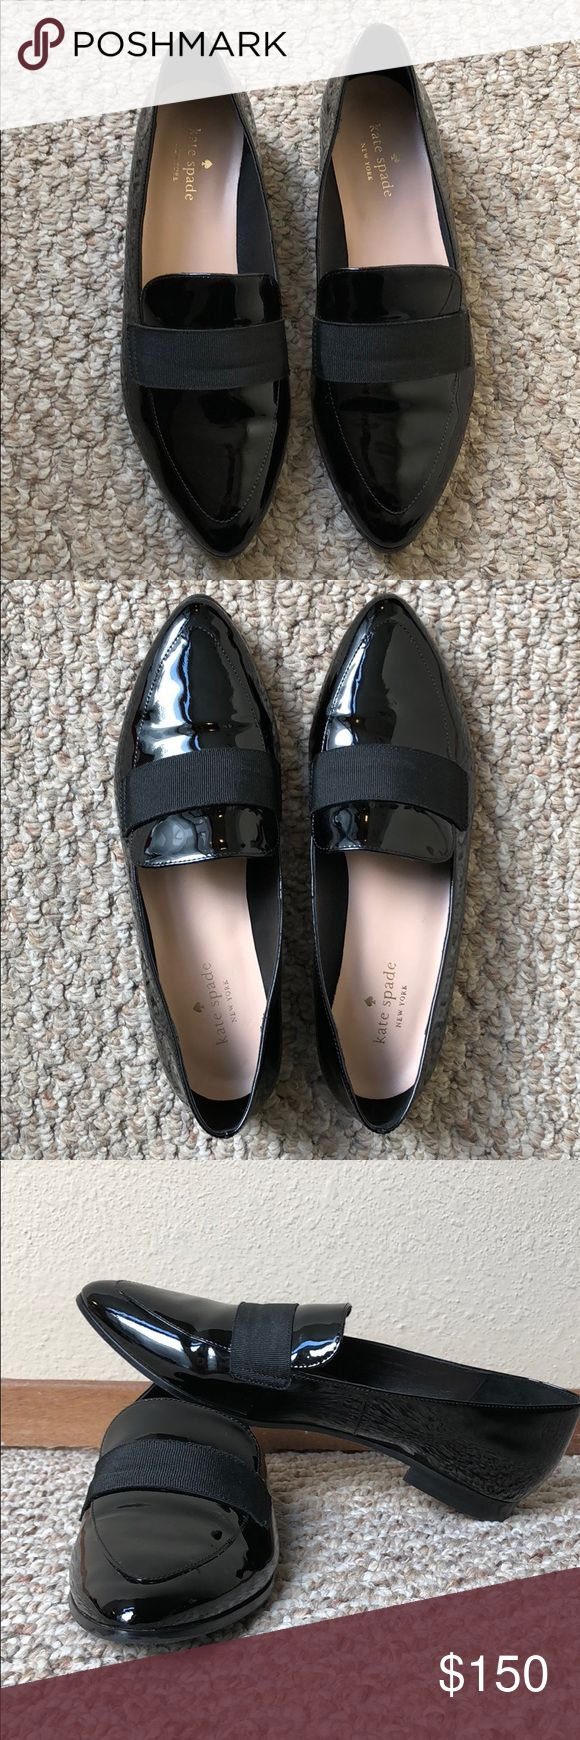 Kate Spade Women's Size 8 Patent Leather Flat 🖤 Worn once to a work event! Would jazz up any outfit! These sleek loafers have a slightly feminine shape, making them a perfect match for nearly everything in your wardrobe, from cropped pants to swingy skirts. Patent leather with stack heel. Slip-on Loafer. kate spade Shoes Flats & Loafers